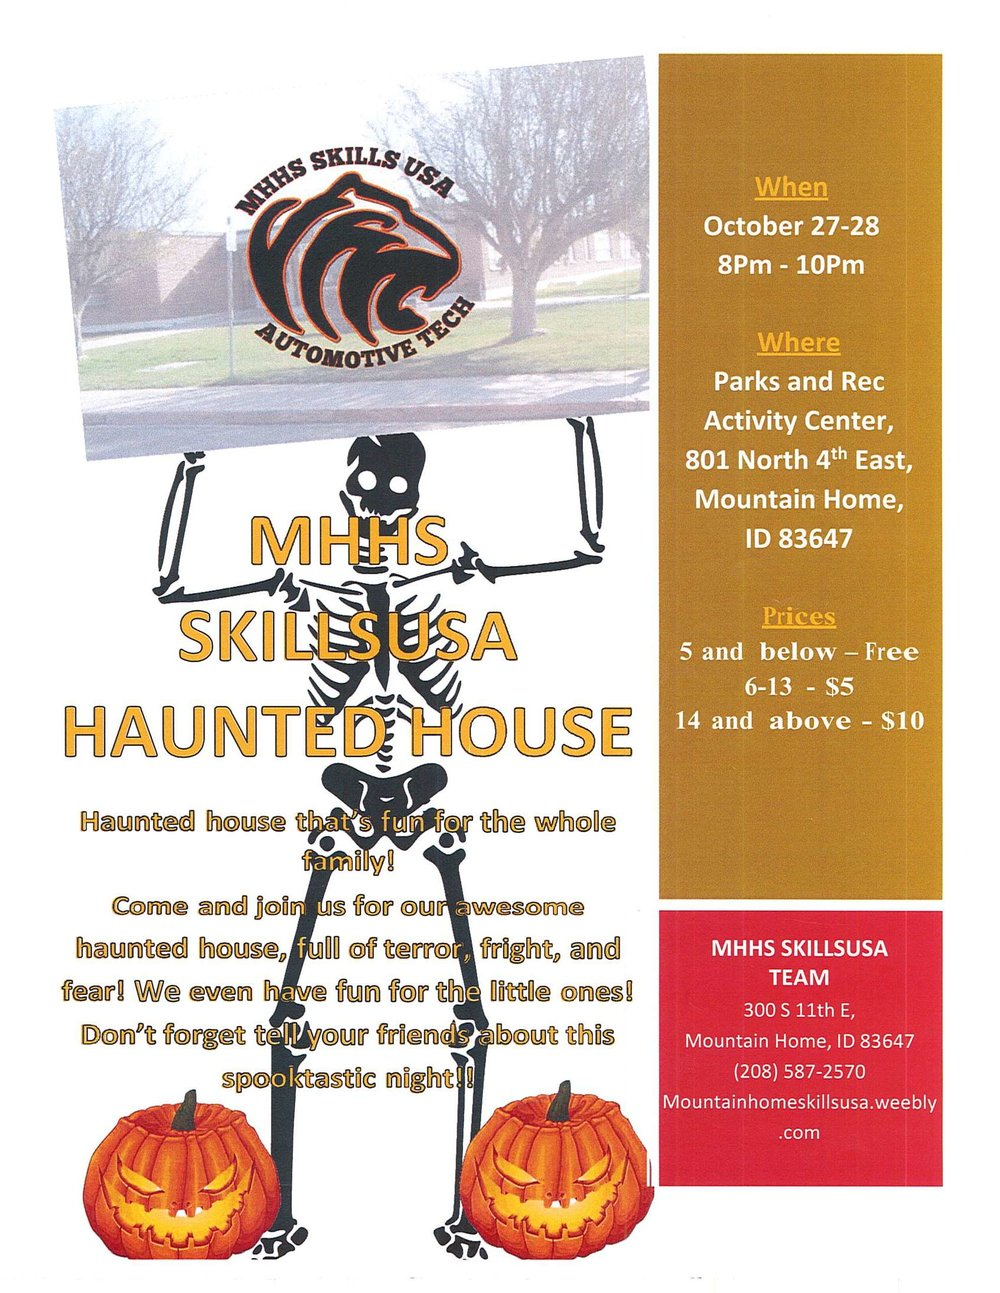 Haunted House Flyer for SkillsUSA.jpg